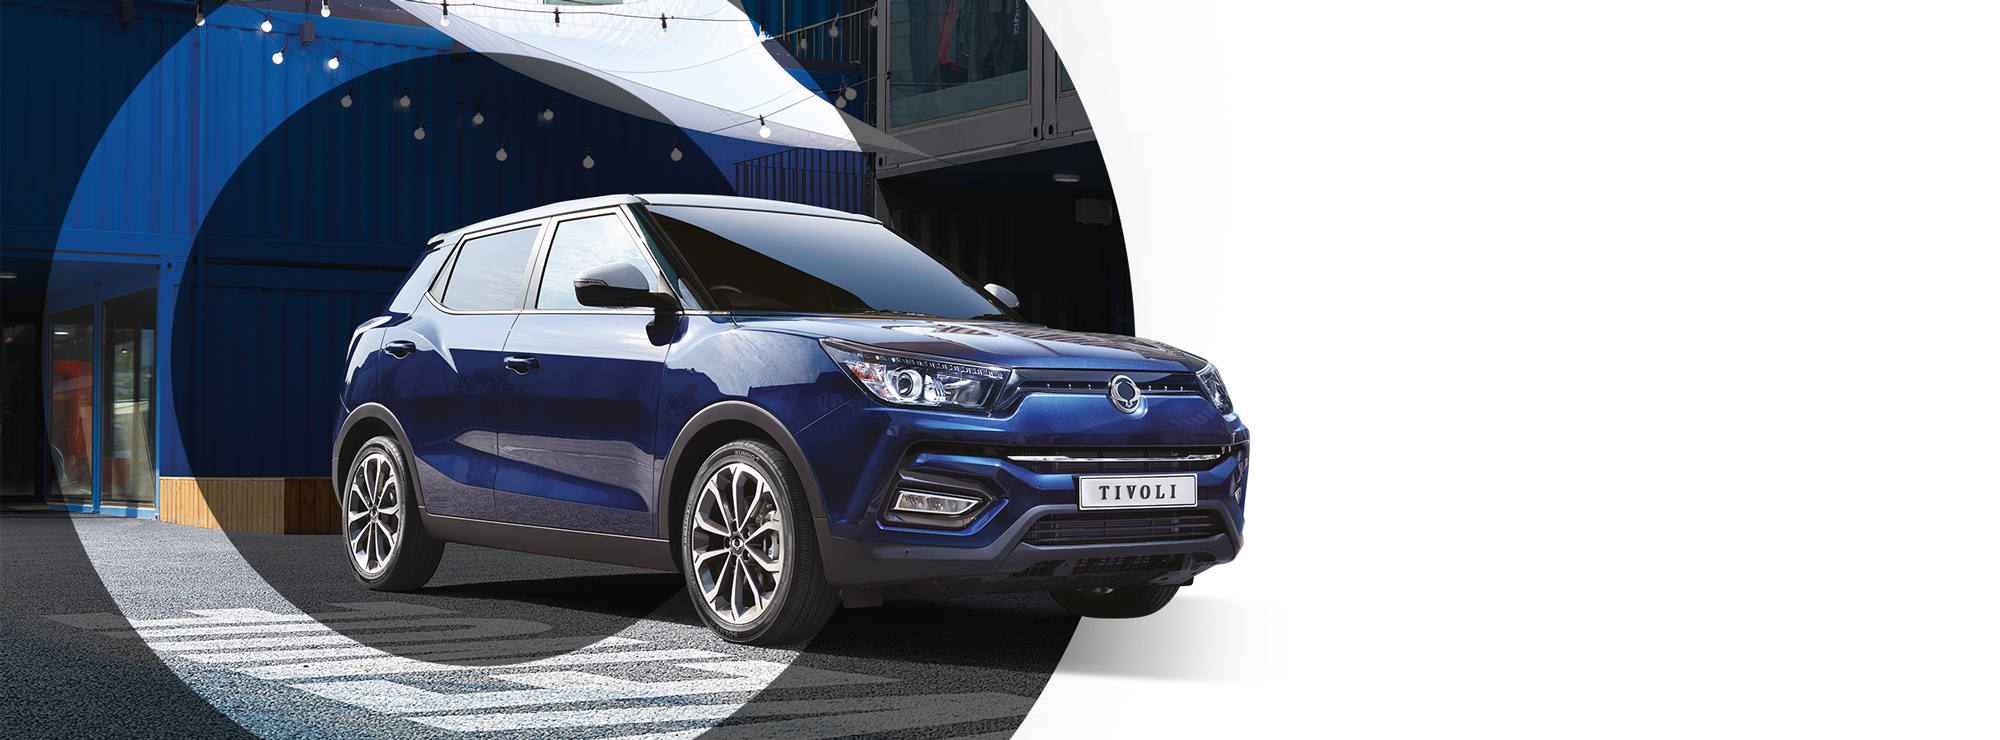 <strong>Tivoli</strong><br/><small>0% APR<br />Hire Purchase</small>